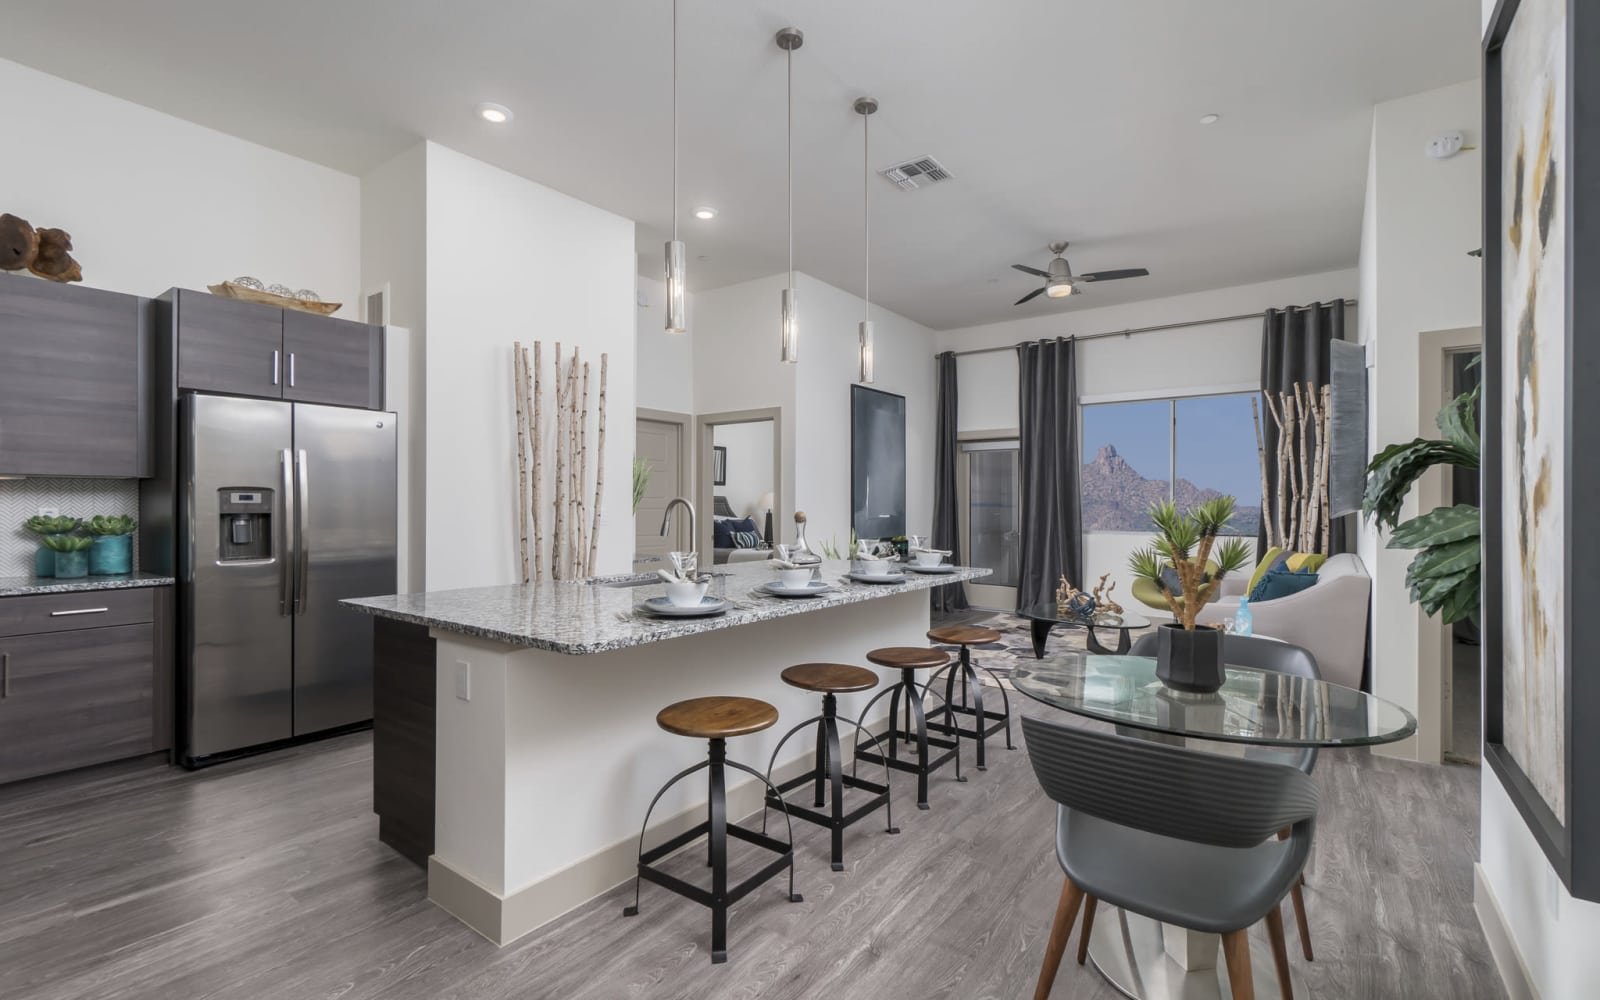 Modern kitchen with upgraded appliances at The District at Scottsdale in Scottsdale, Arizona